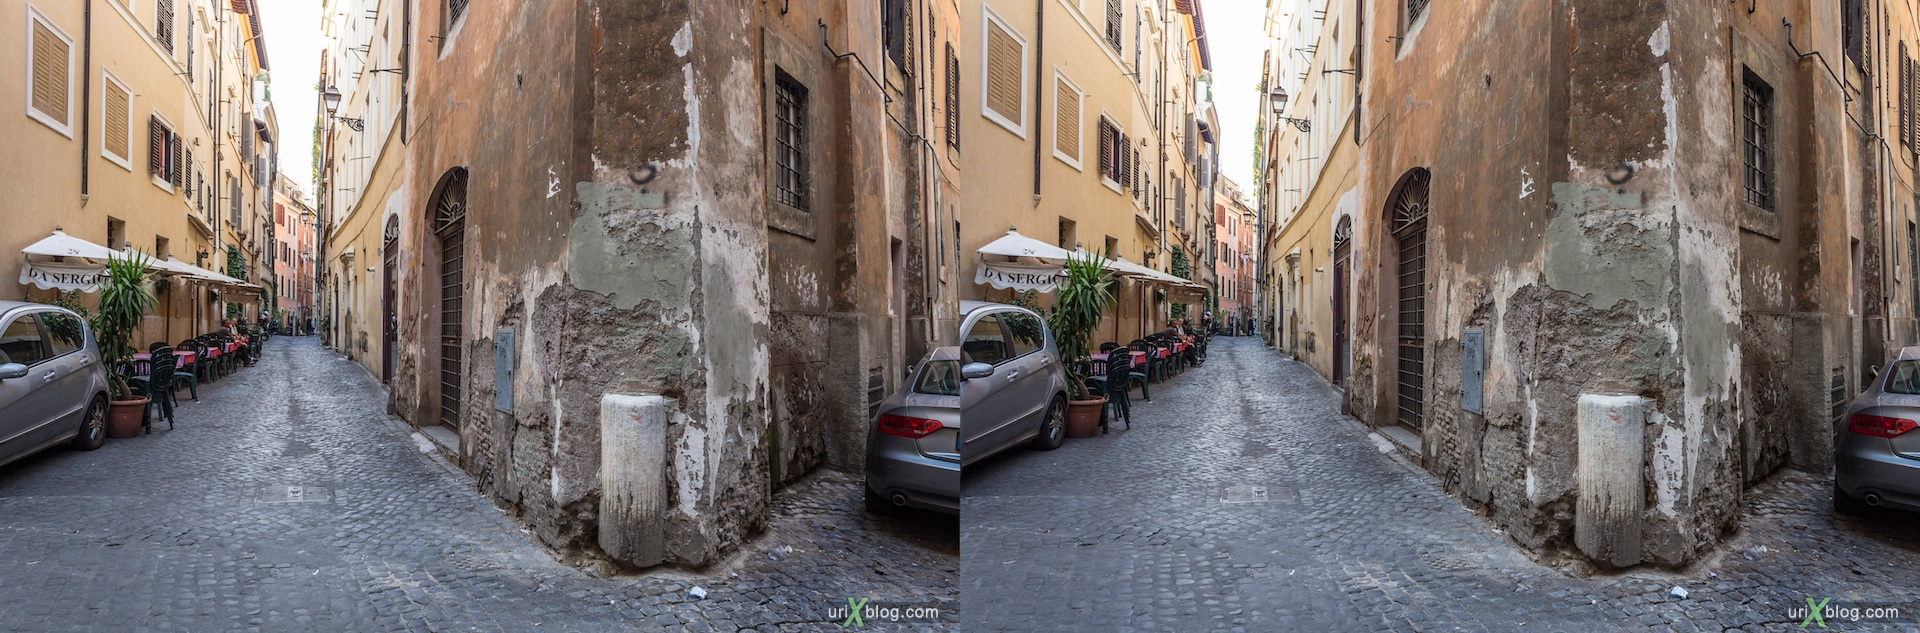 2012, vicolo delle Grotte alley, street, 3D, stereo pair, cross-eyed, crossview, cross view stereo pair